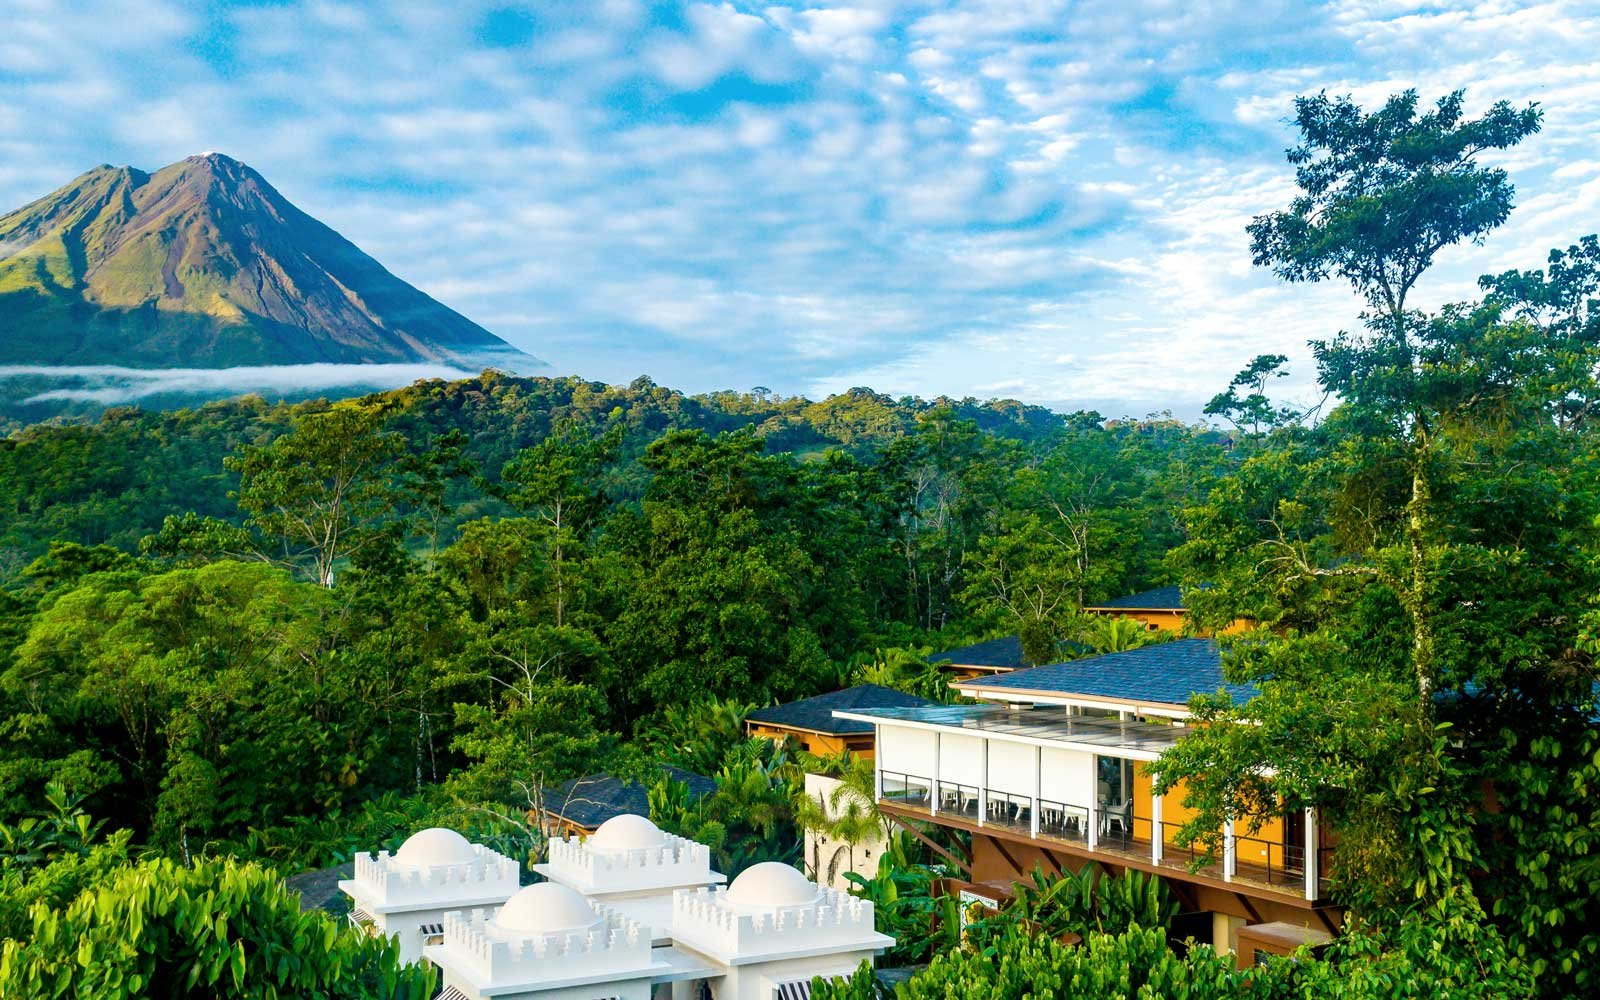 the 2018 world's best resorts in central america | travel + leisure